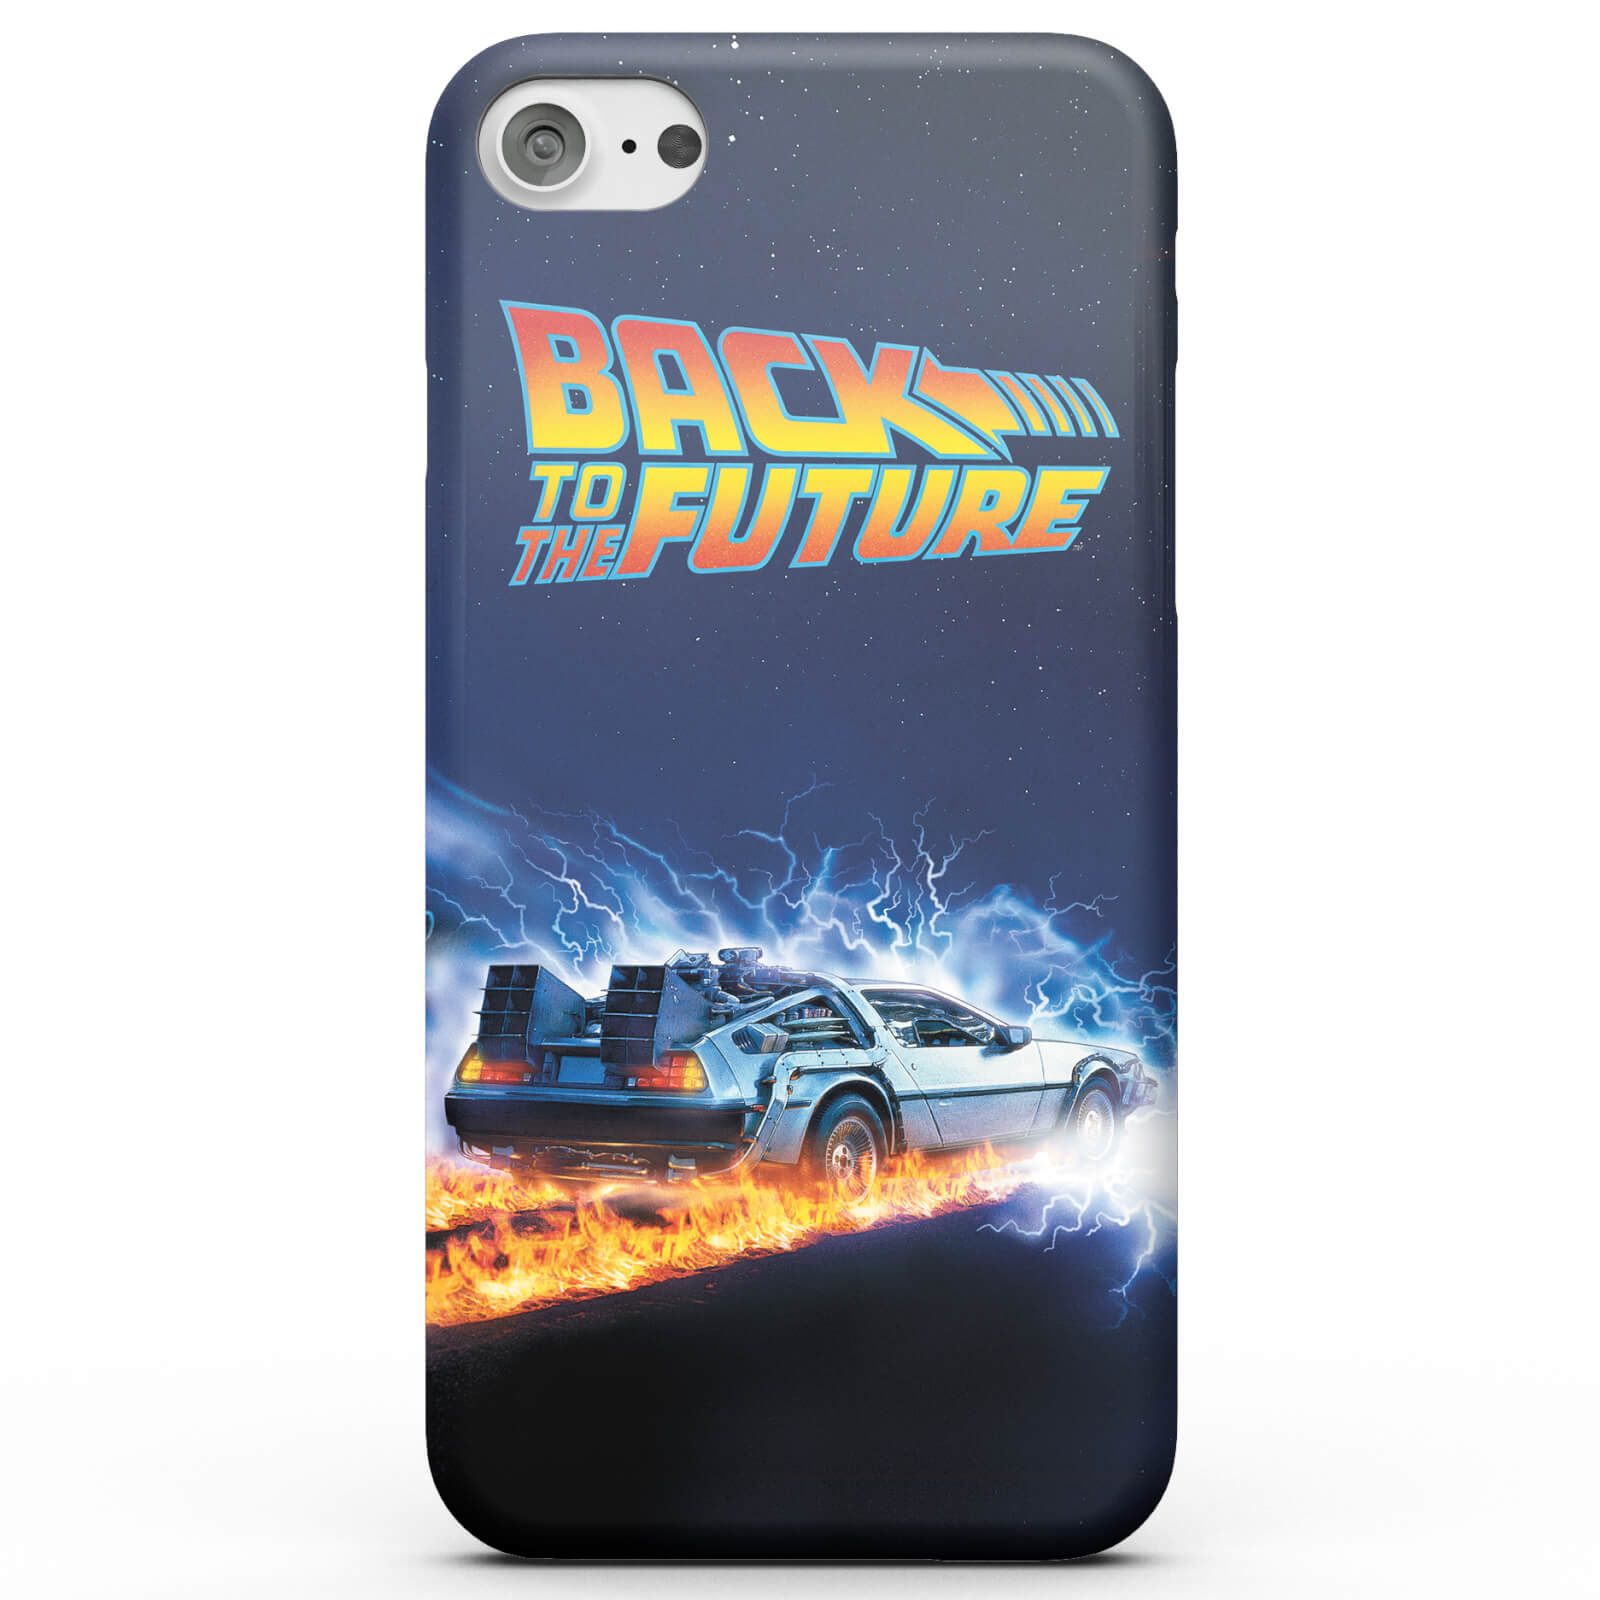 3f9841b78bd533 Back To The Future Outatime Phone Case Electronics